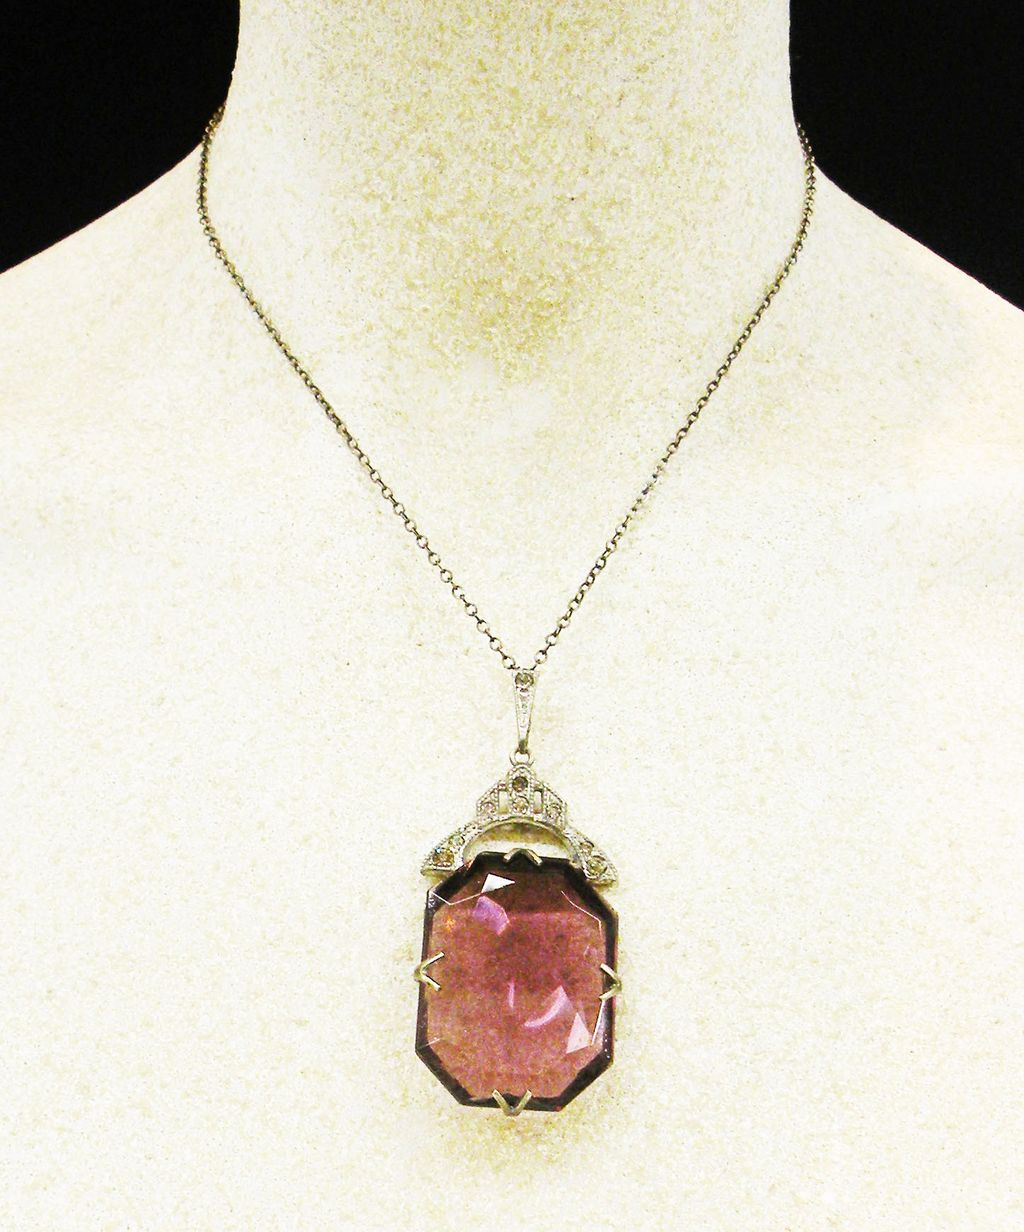 ART DECO Purple Faceted Stone and Paste Pendant Necklace